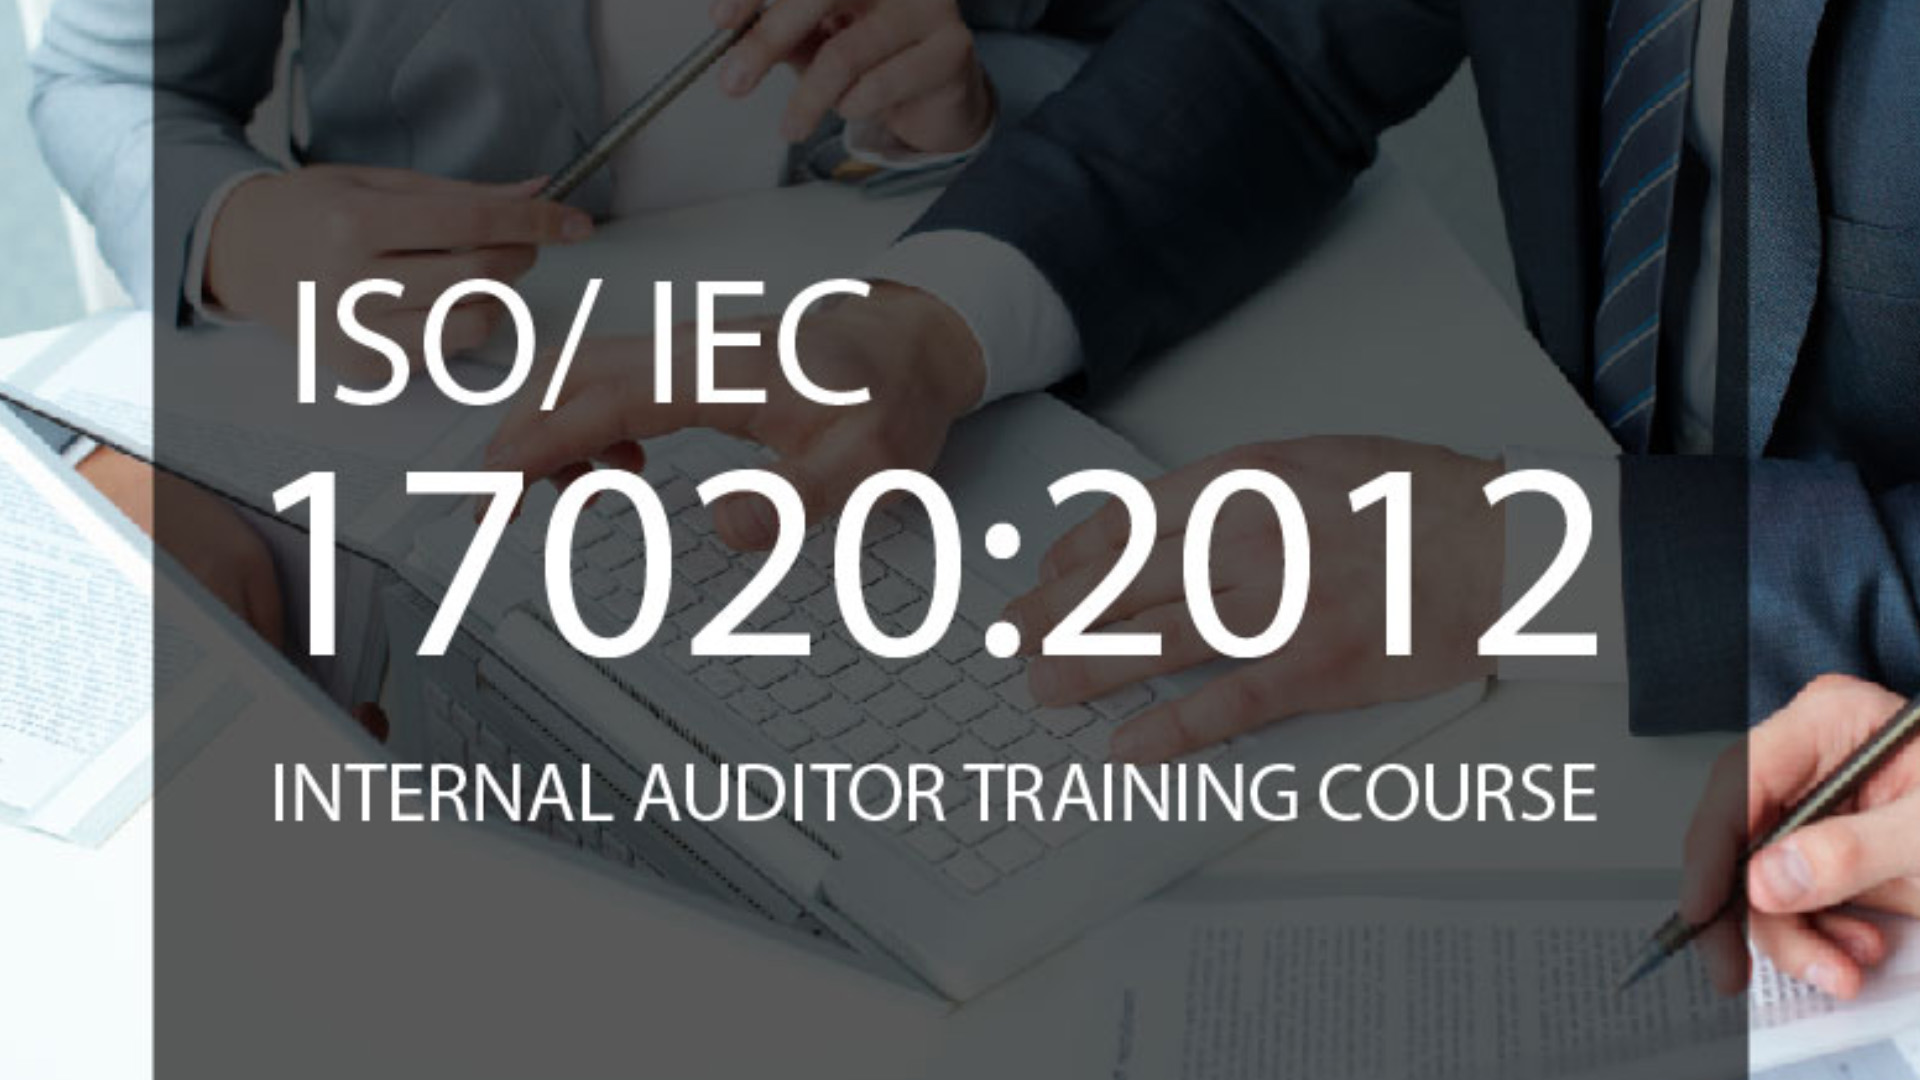 ISO/IEC 17020:2012 Internal Auditor Training Course